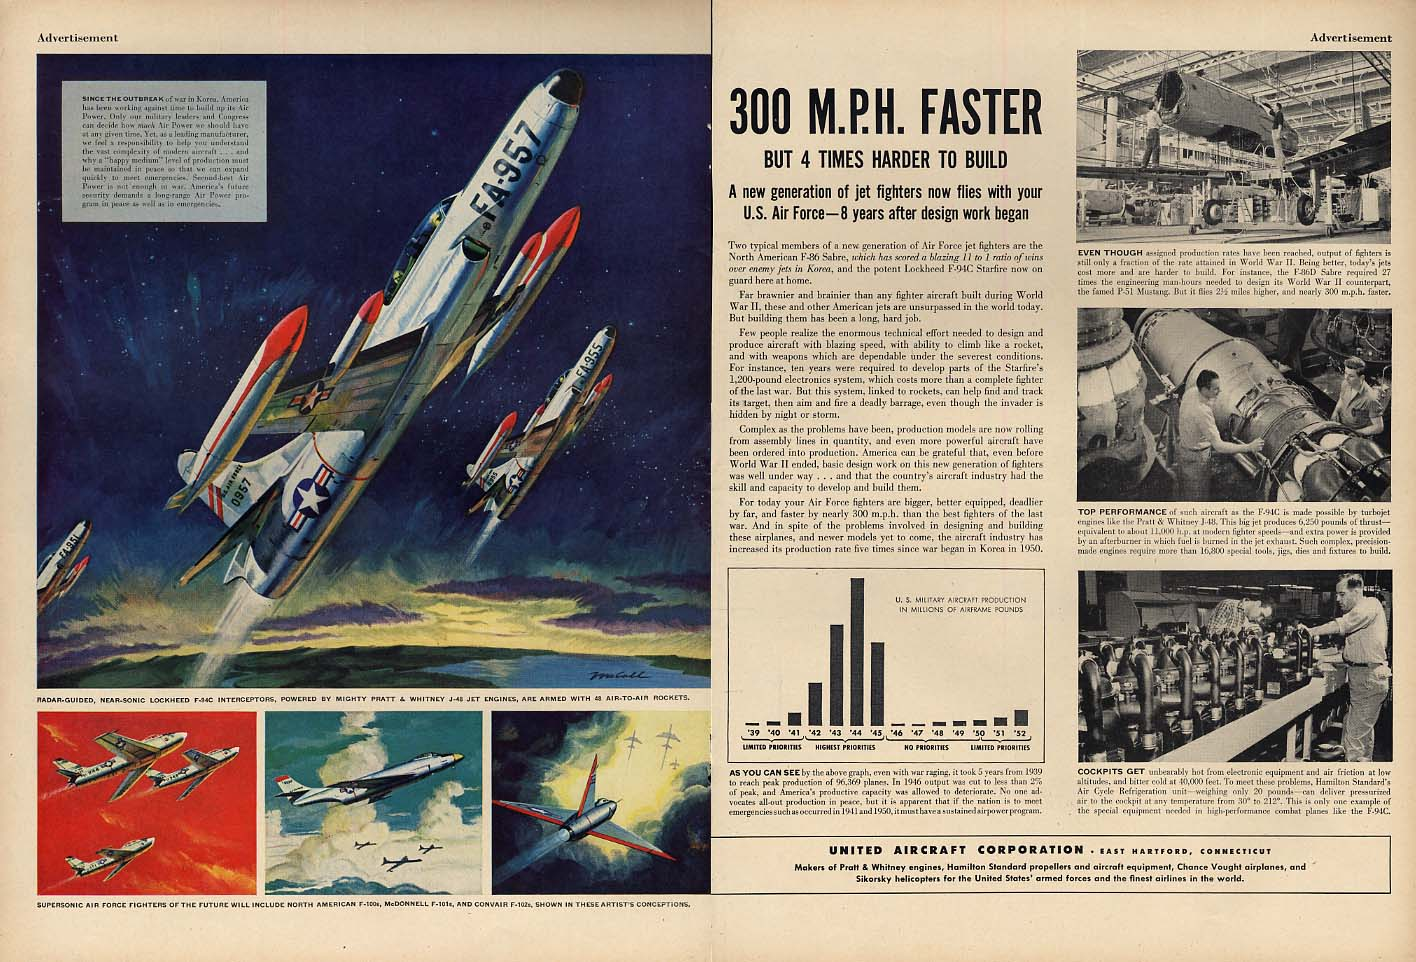 300 MPH Faster 4 times harder to build United Aircraft Lockheed F-94C ad 1953 L